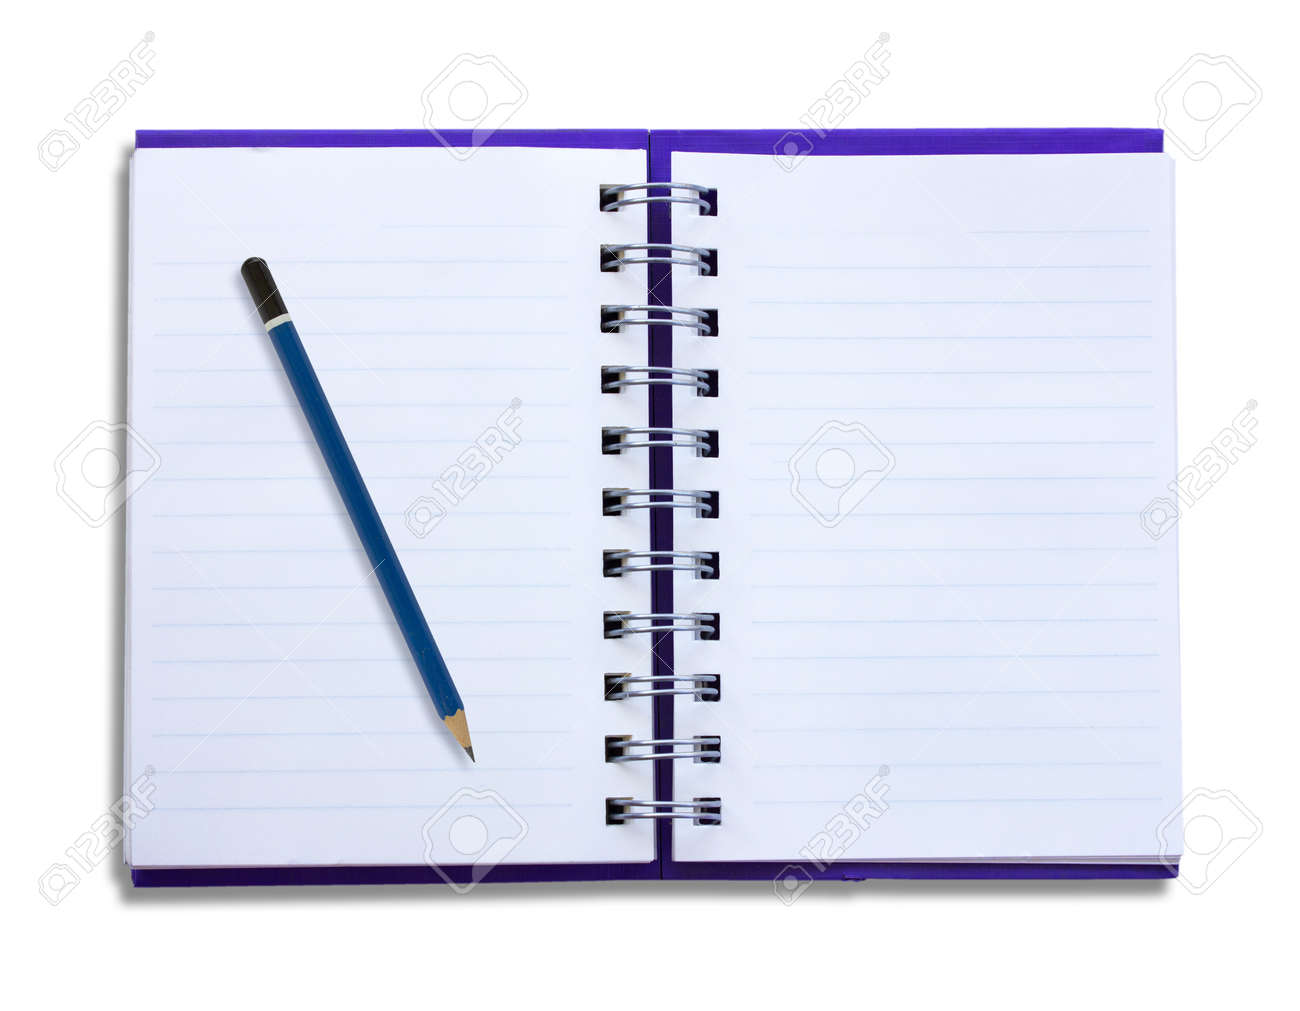 Notepad and pencil on a white background Stock Photo - 17112124